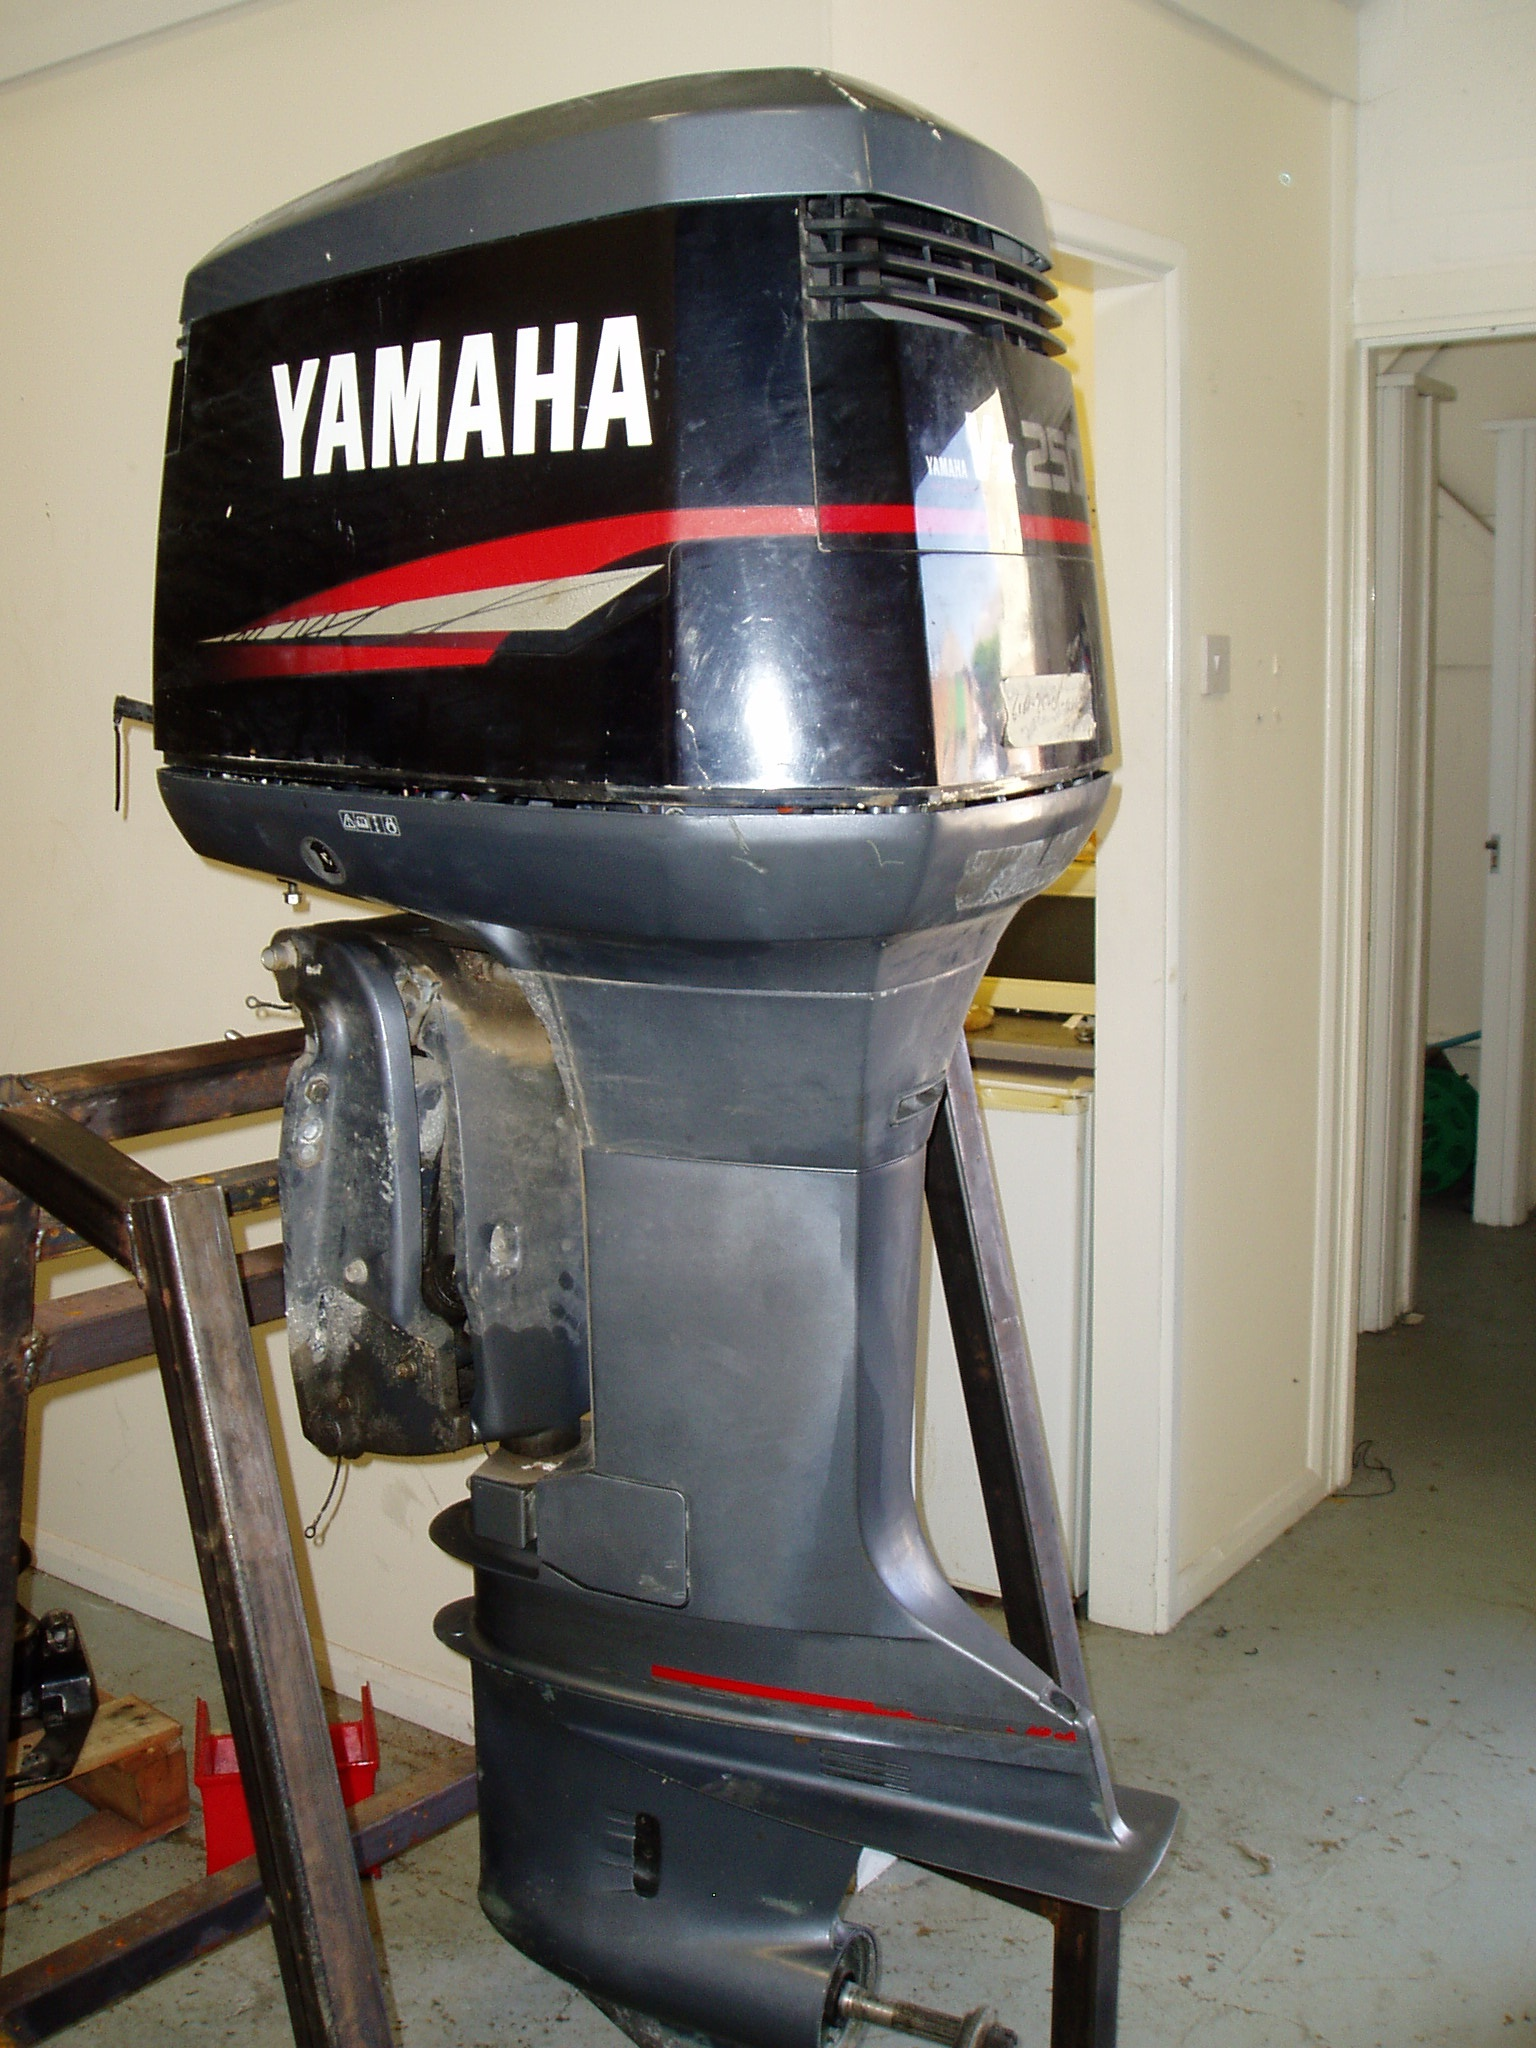 Quality refurbished outboard engines for sale, Hampshire, UK